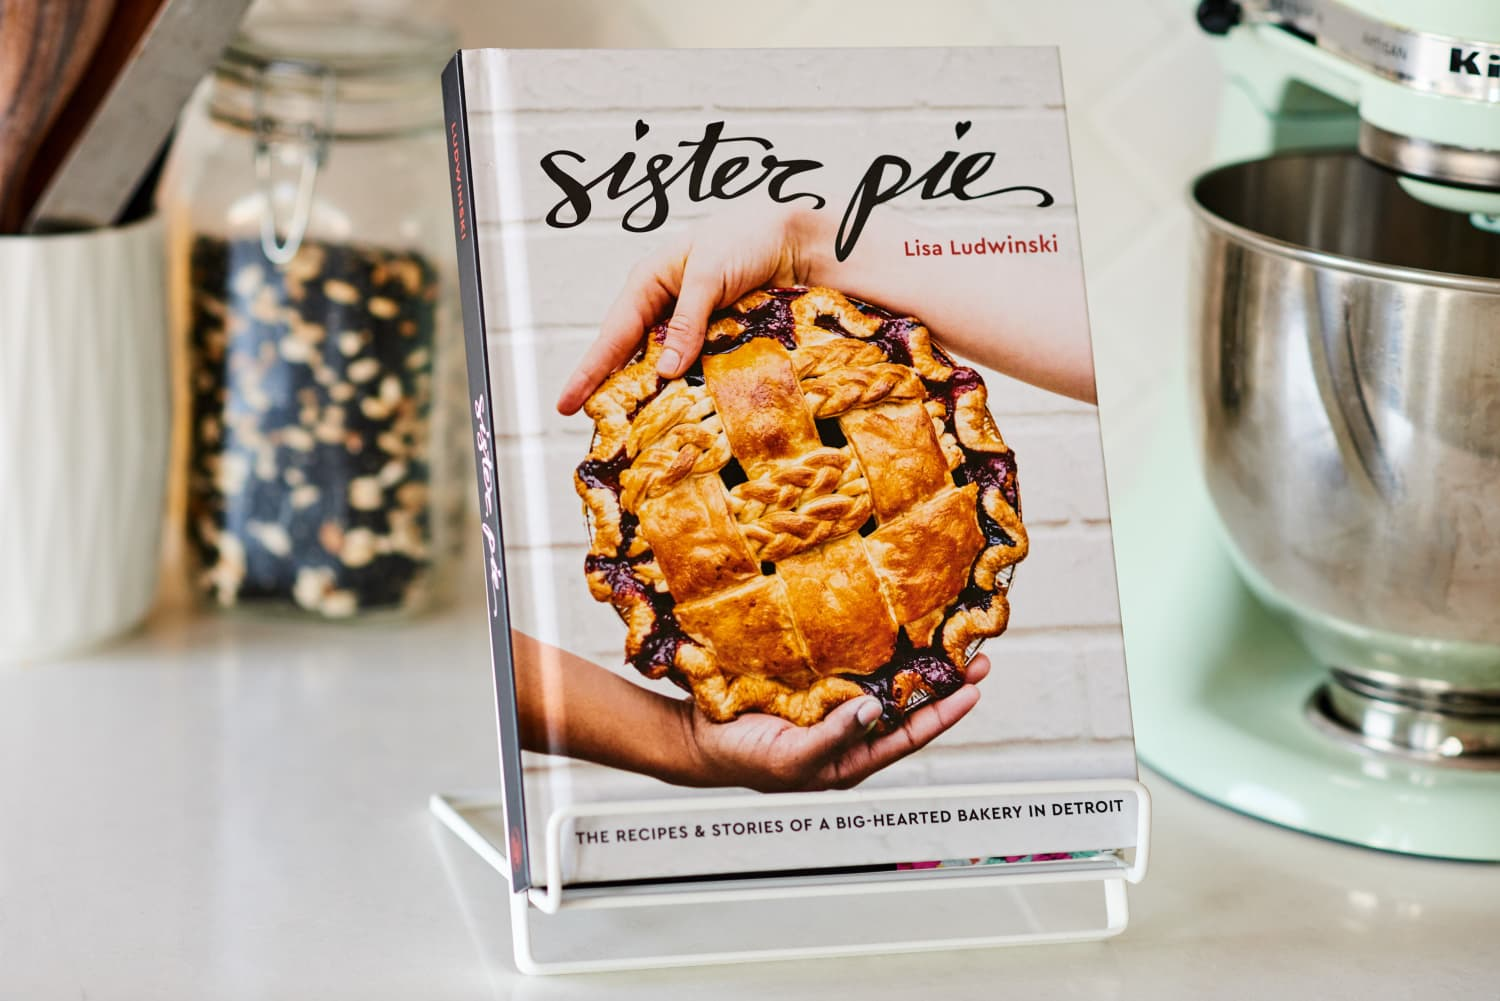 Come Bake with Us! Our November Pick for Kitchn's Cookbook Club Is Sister Pie by Lisa Ludwinski